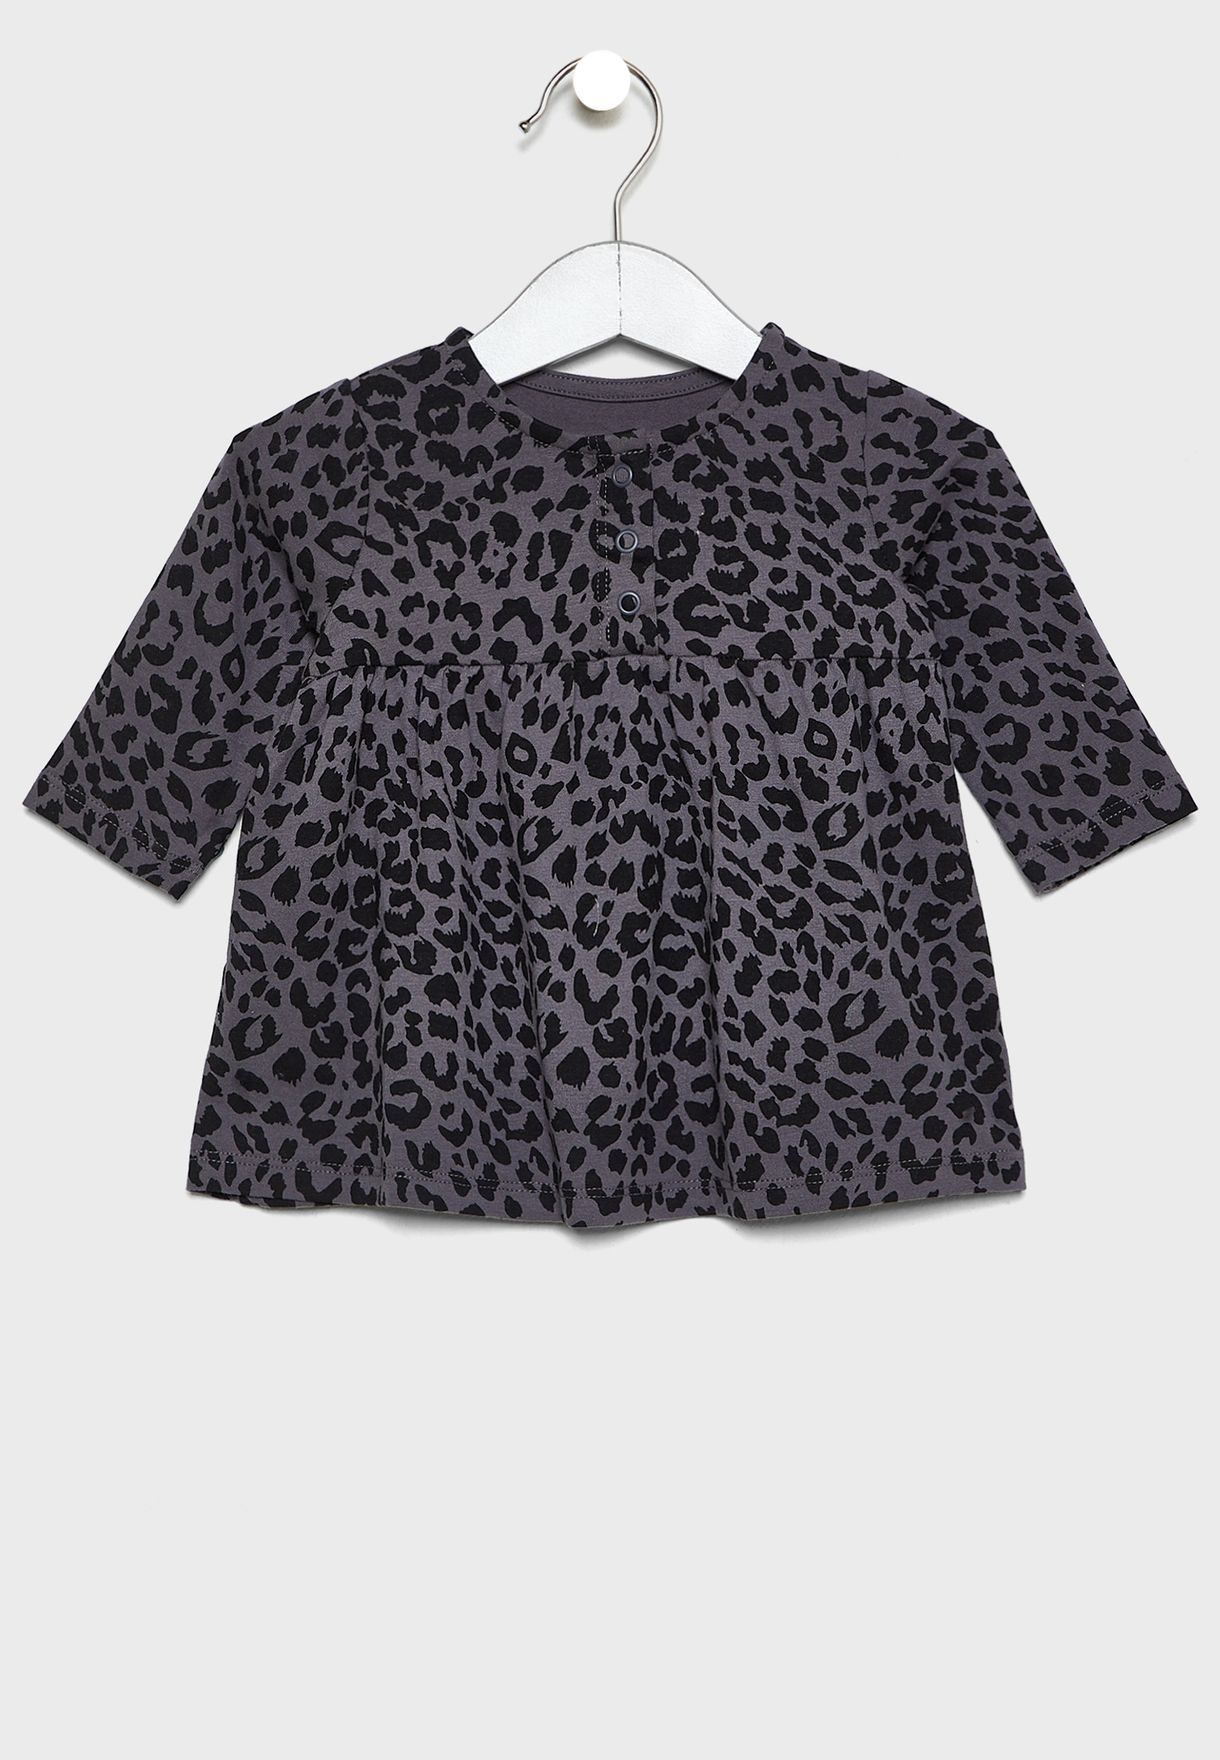 Infant Leopard Print Dress